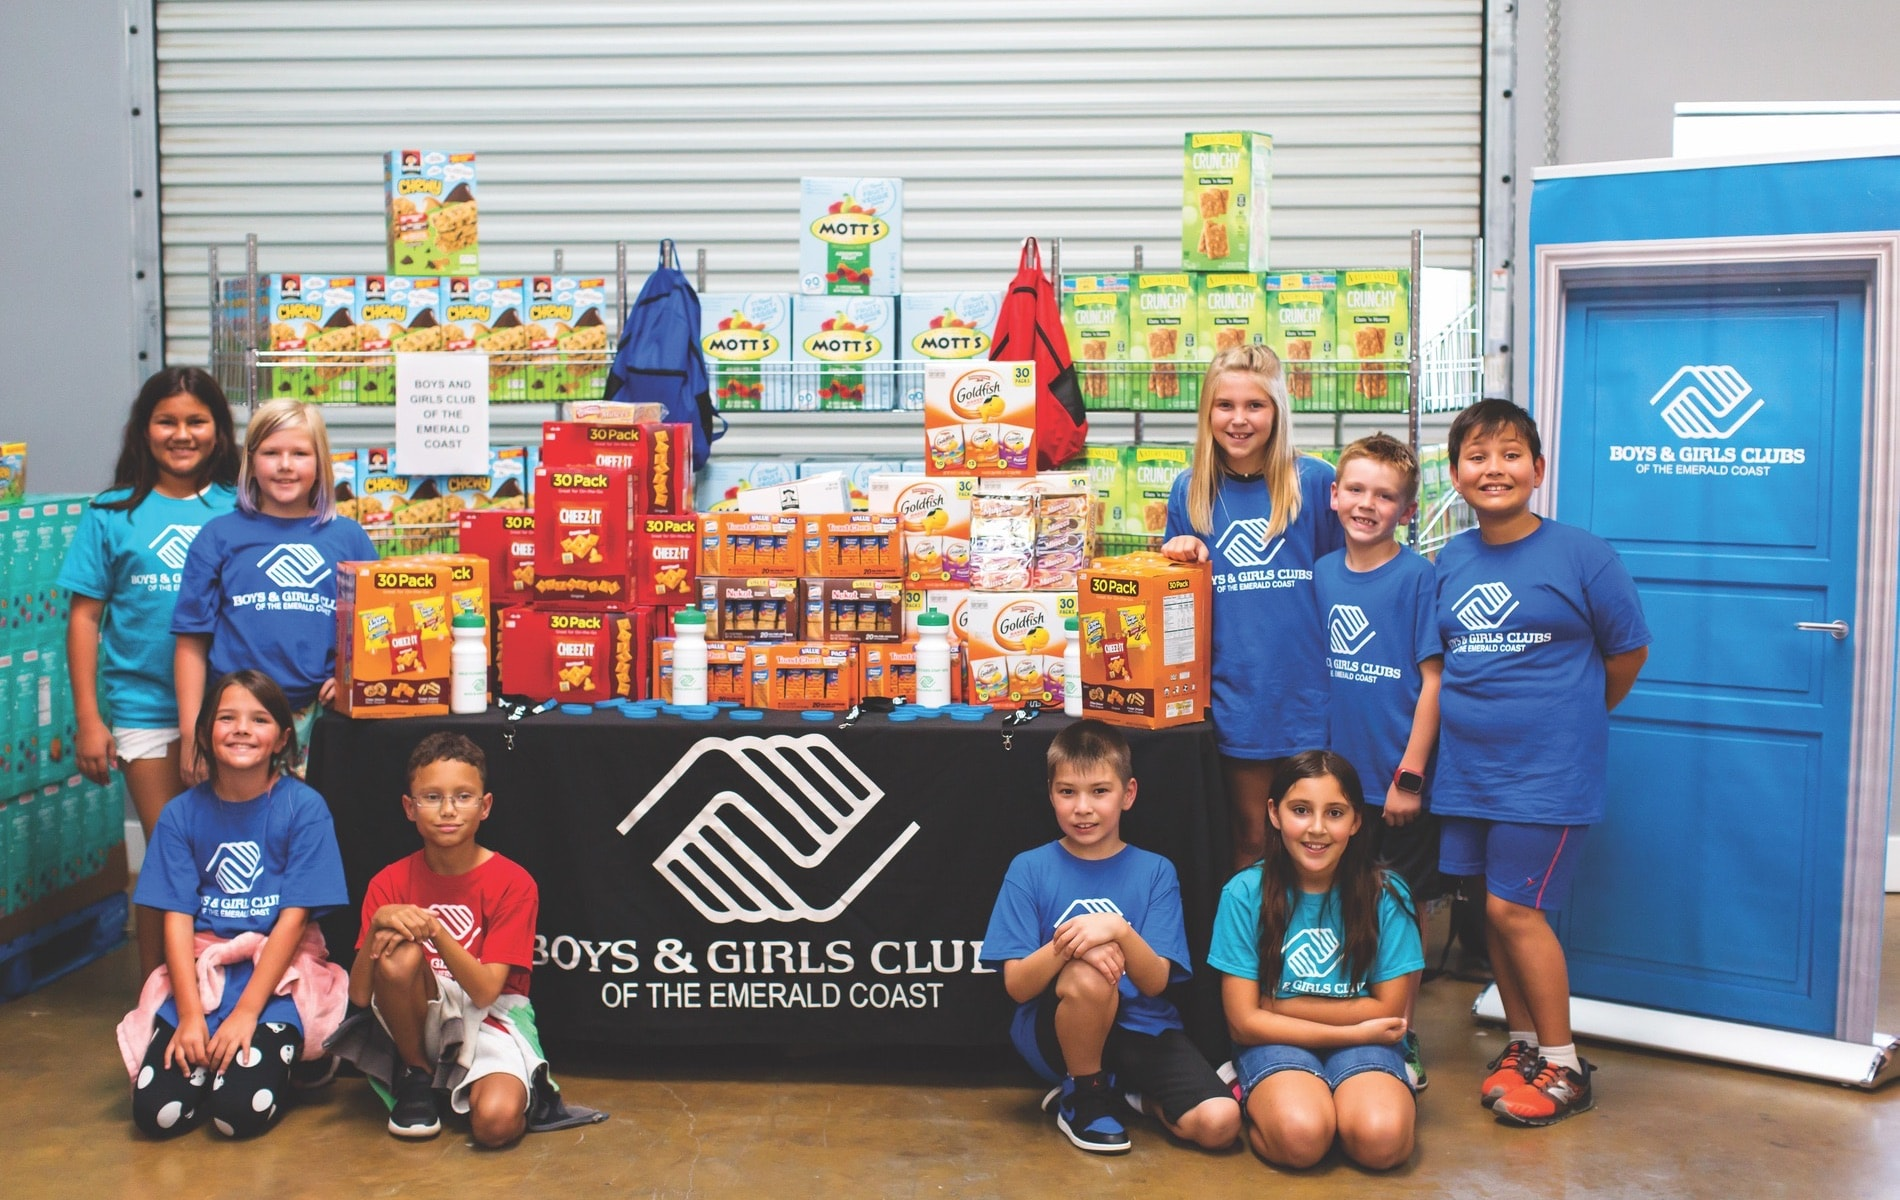 Boys & Girls Clubs, Boys & Girls Club, Boys & Girls Clubs of the Emerald Coast, Northwest Florida, COVID-19, Coronavirus, Food For Thought, Food for Thought Outreach